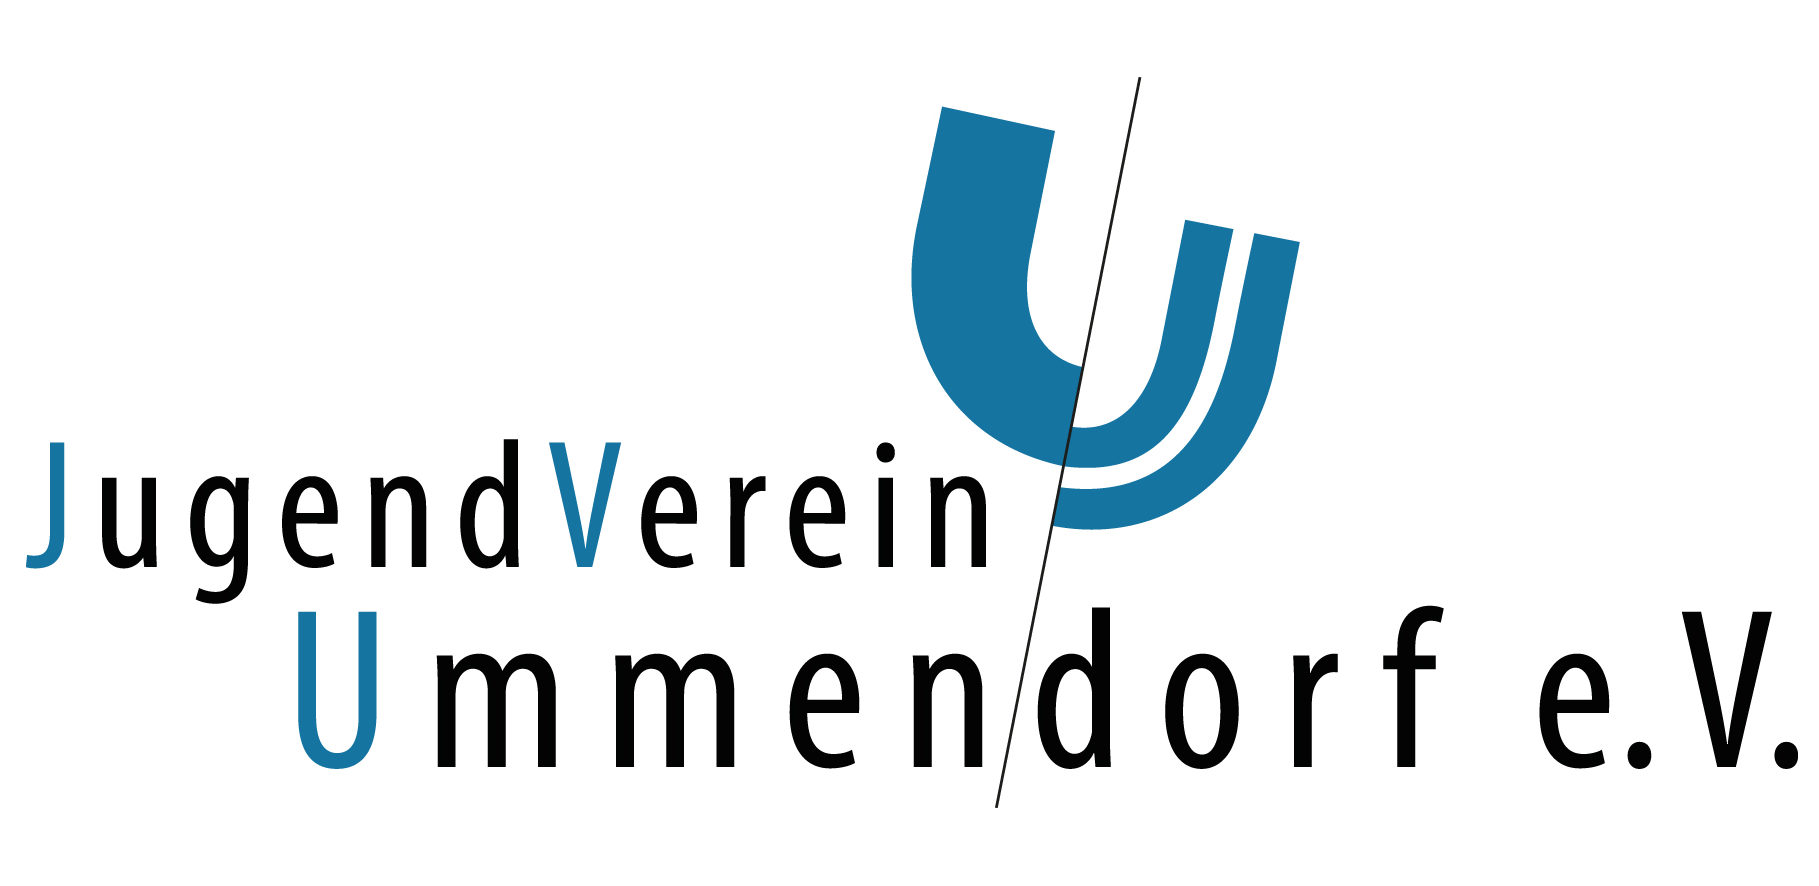 Jugendverein Ummendorf